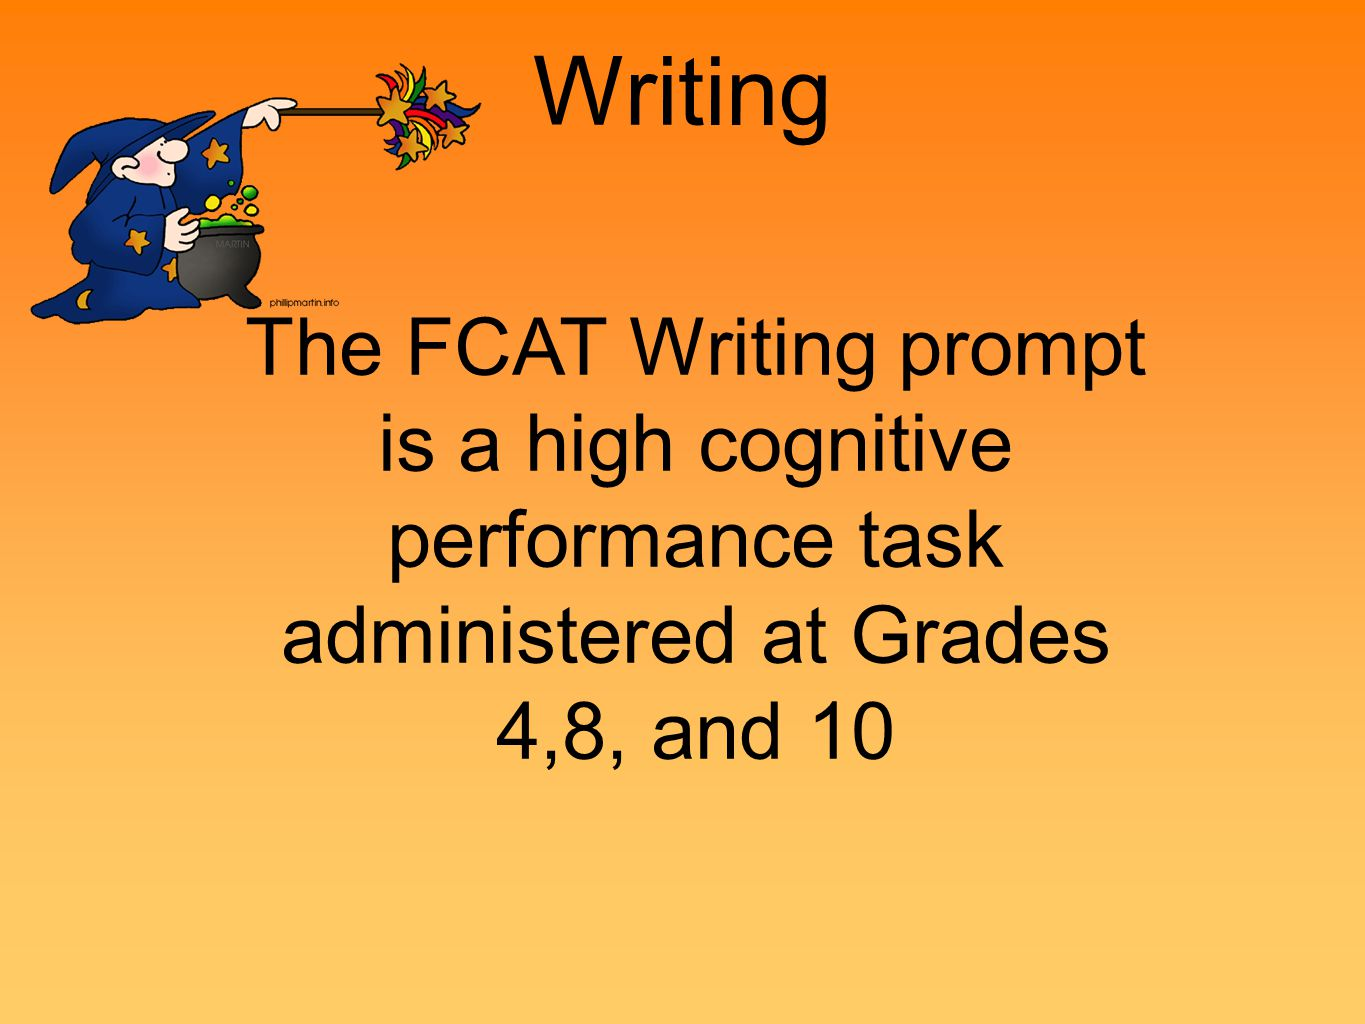 Writing The FCAT Writing prompt is a high cognitive performance task administered at Grades 4,8, and 10.